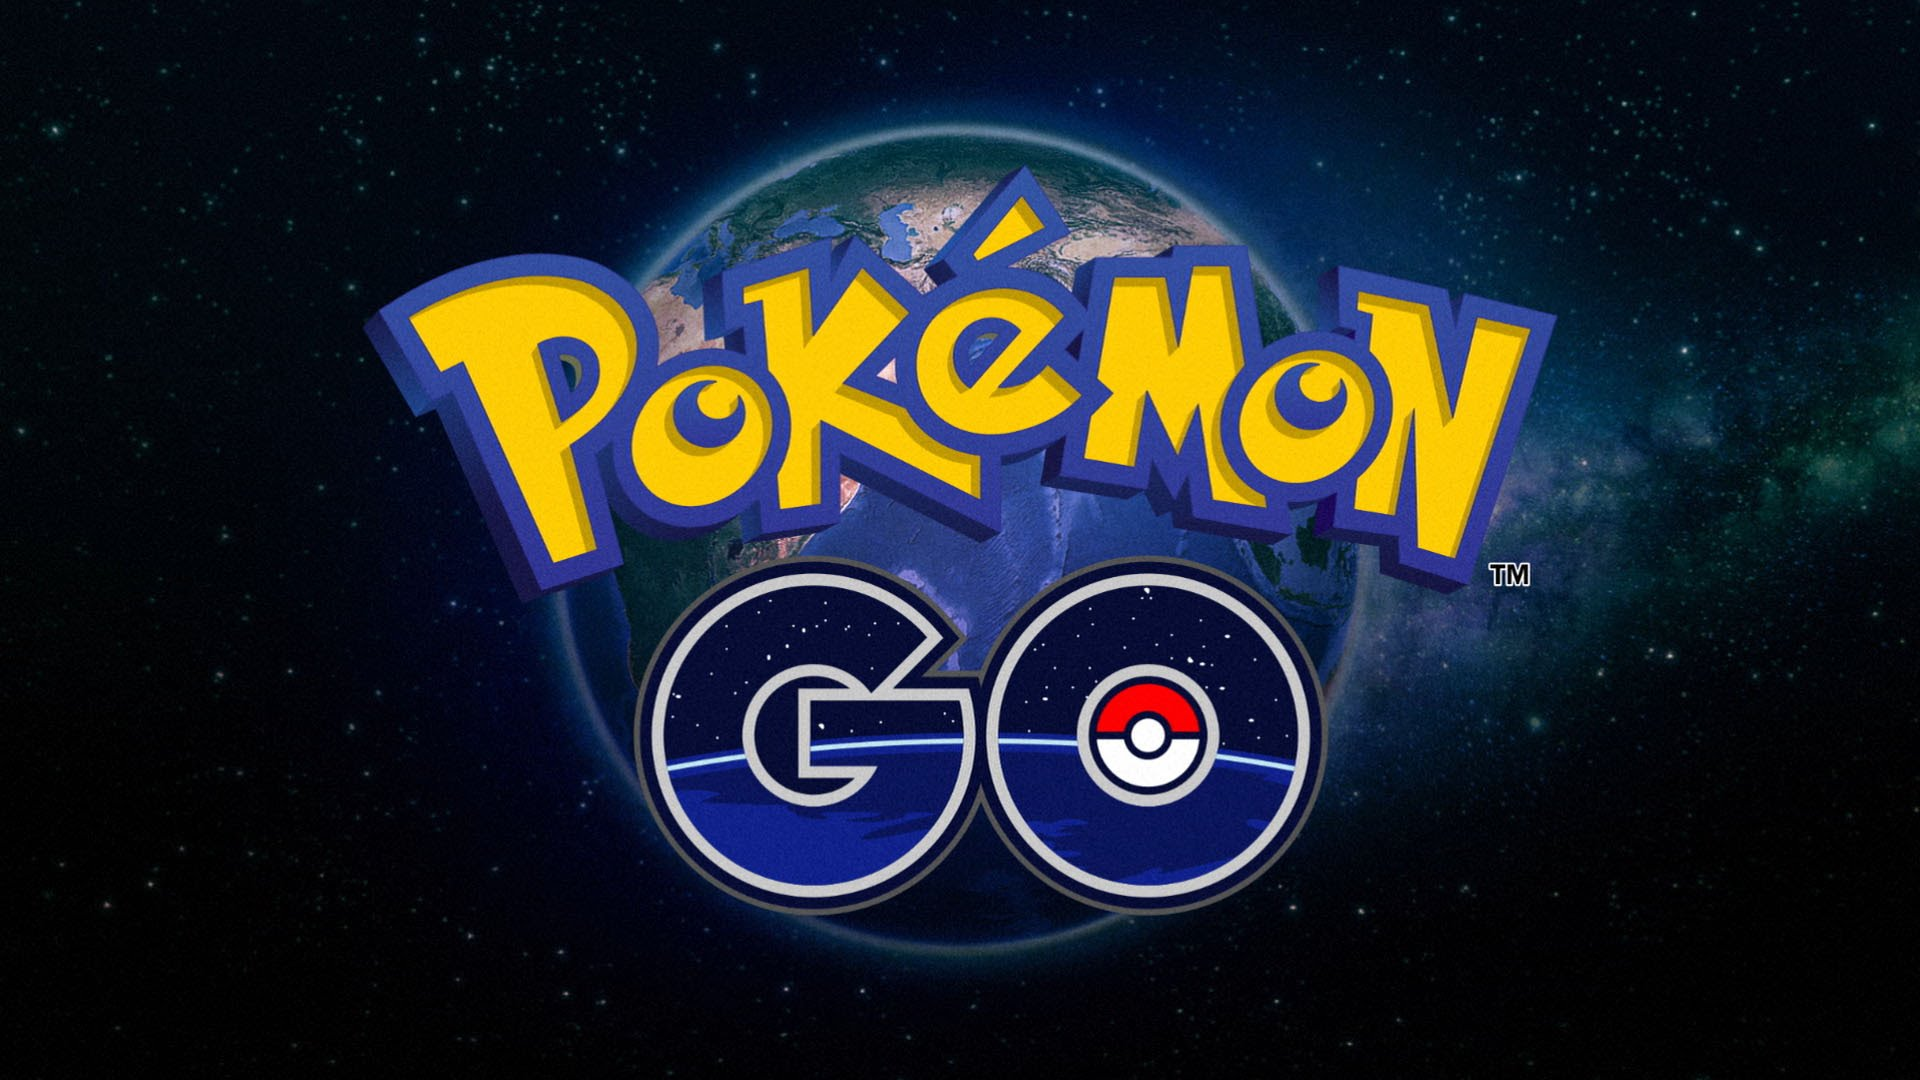 Pokémon GO App, Coming Soon